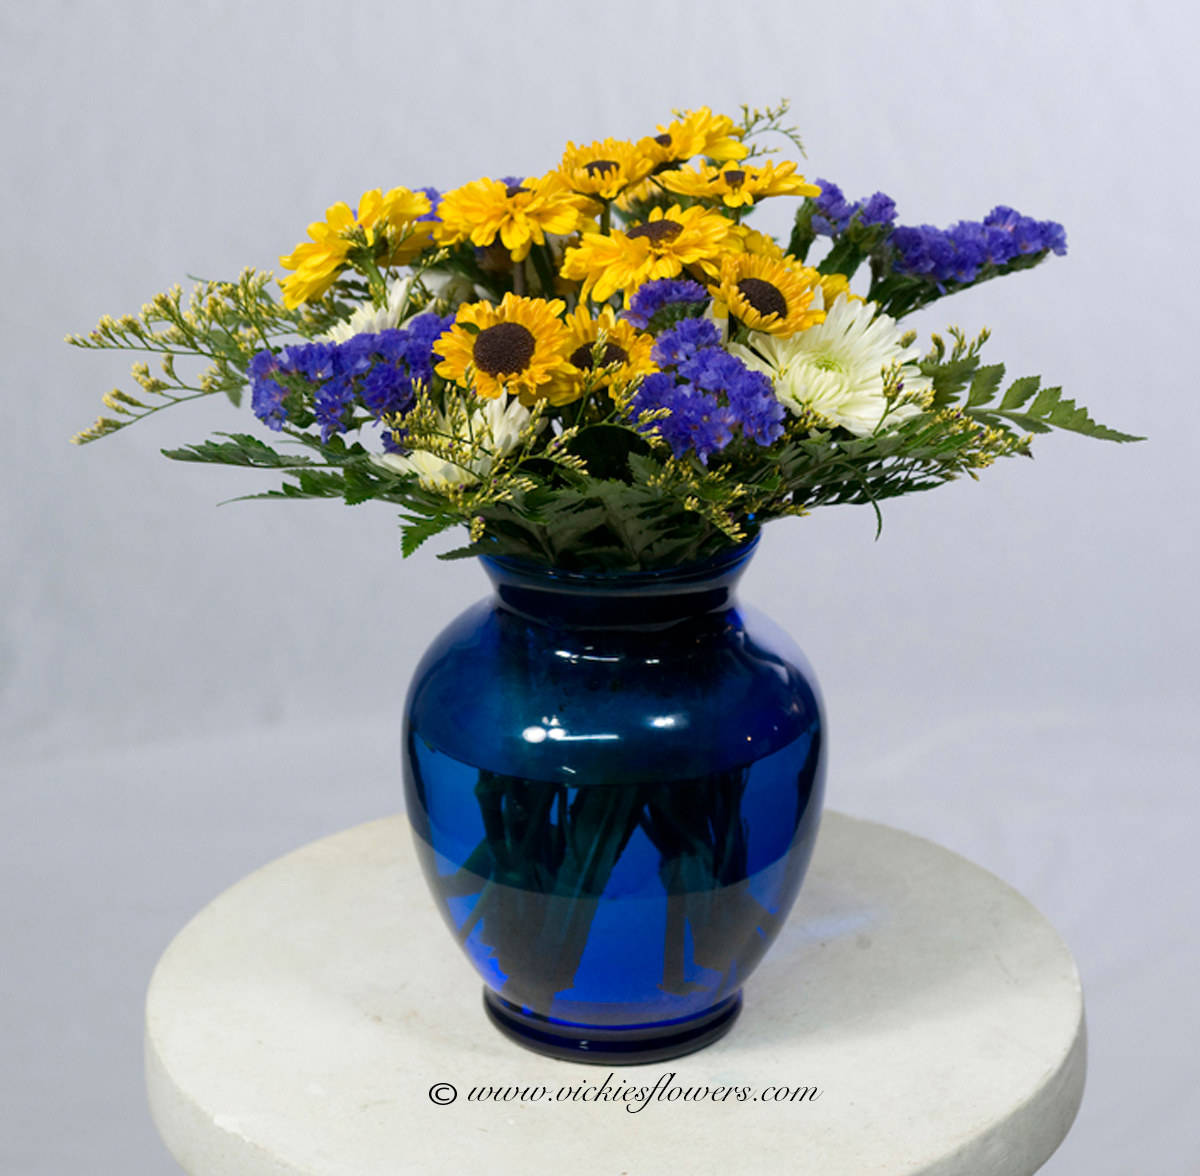 Birthday anniversary thank you congratulations vickies flowers bouquet u 012 45 plus tax and delivery classic bright and cheery sunflowers white mums and delphinium in cobalt blue vase izmirmasajfo Image collections